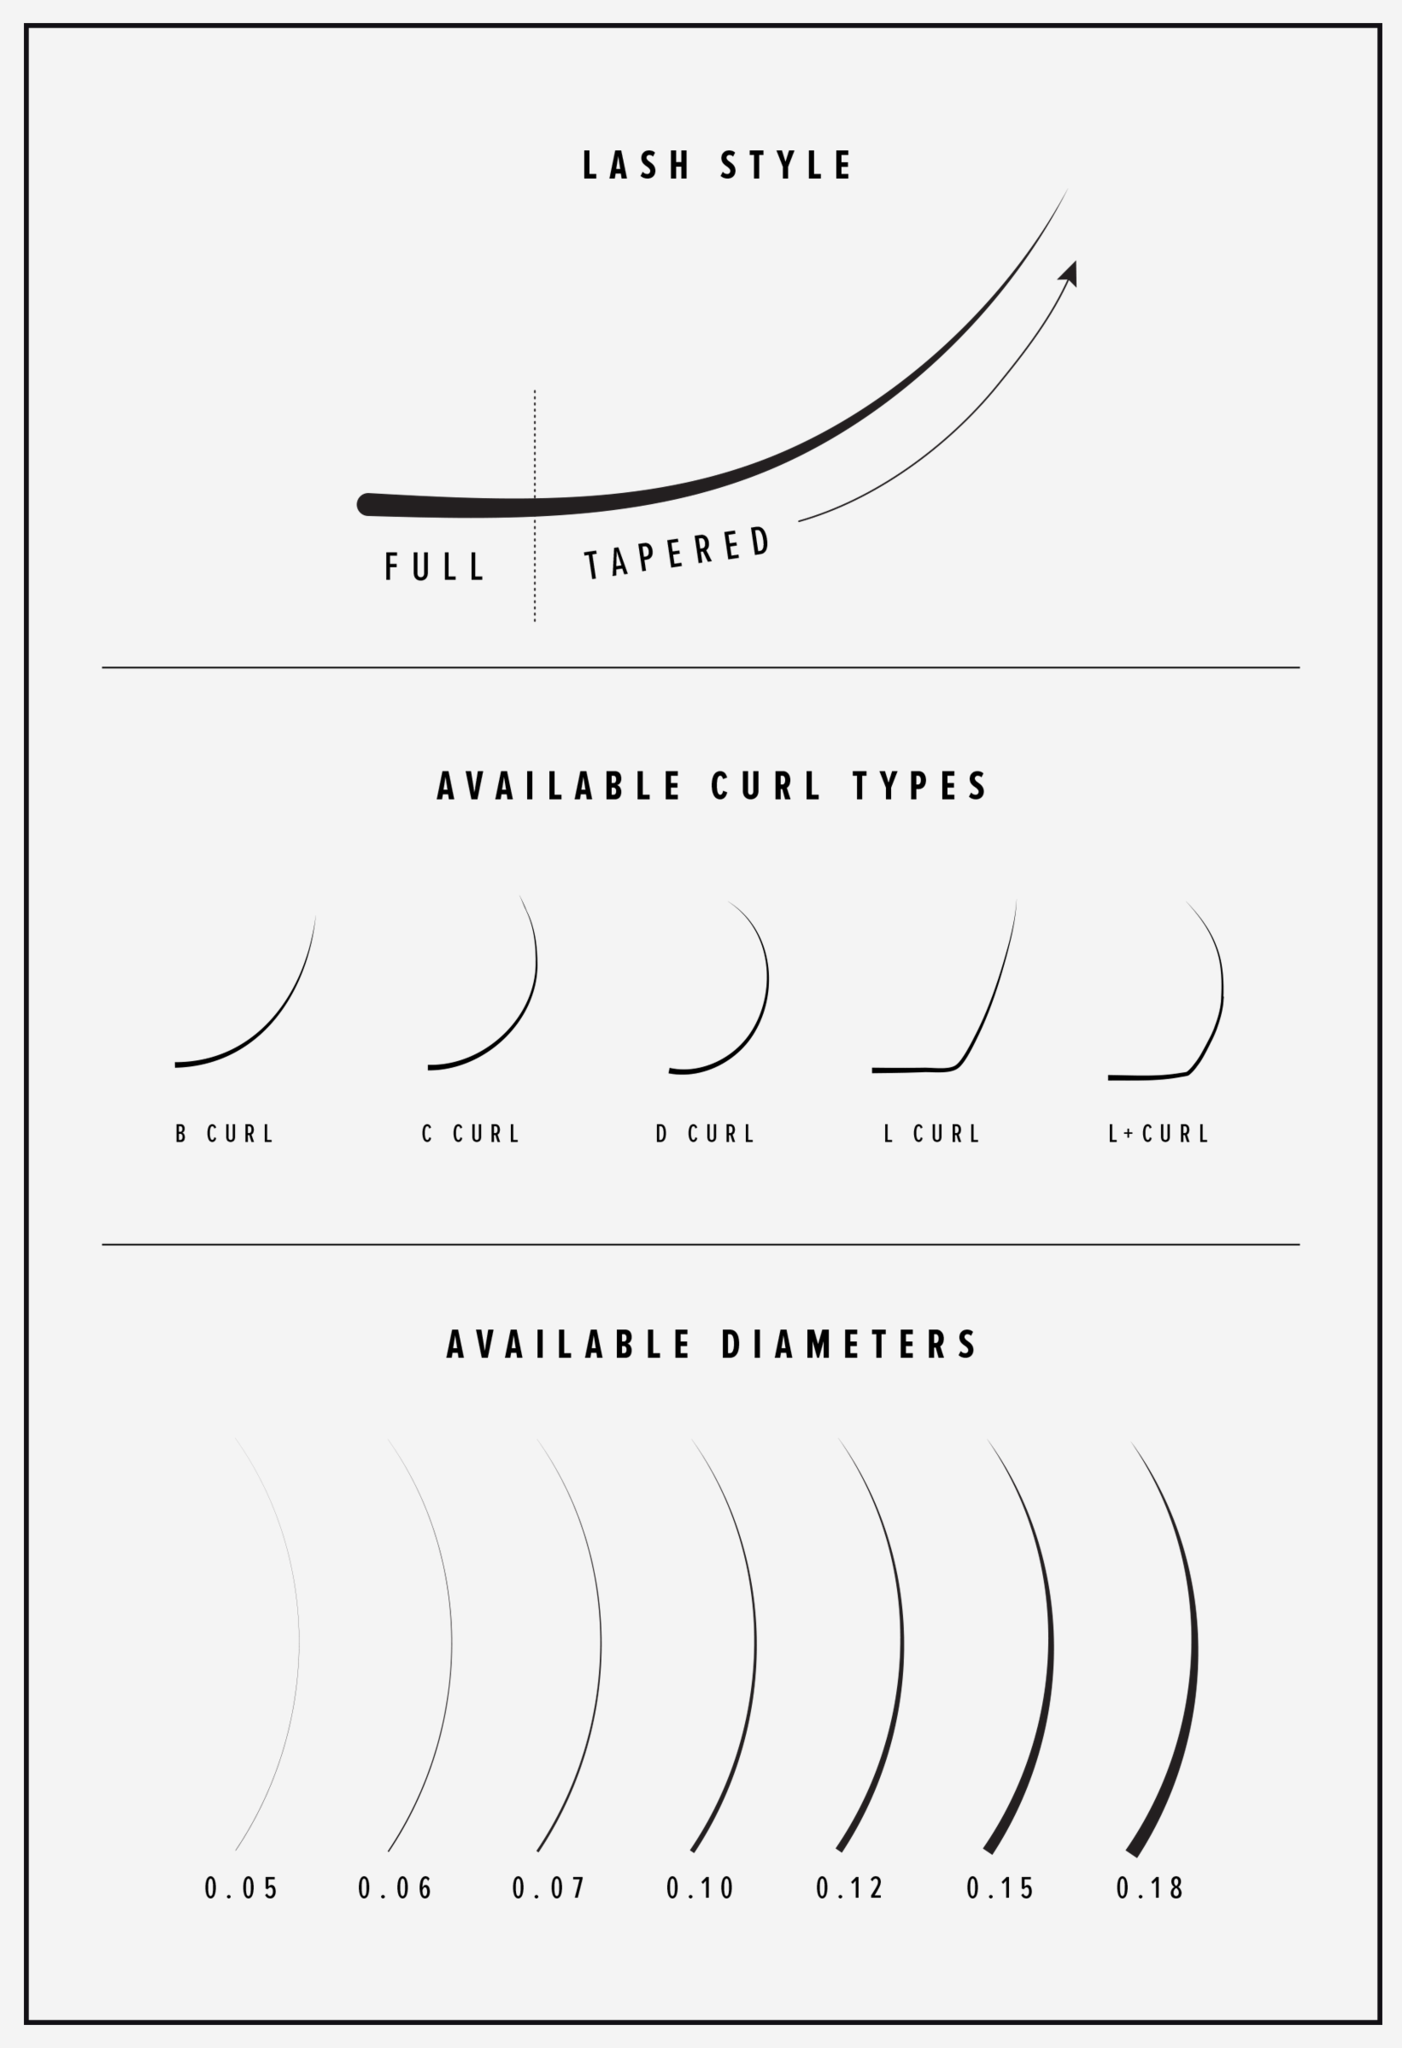 Mink drawing life cycle. Greater lengths lashes mm